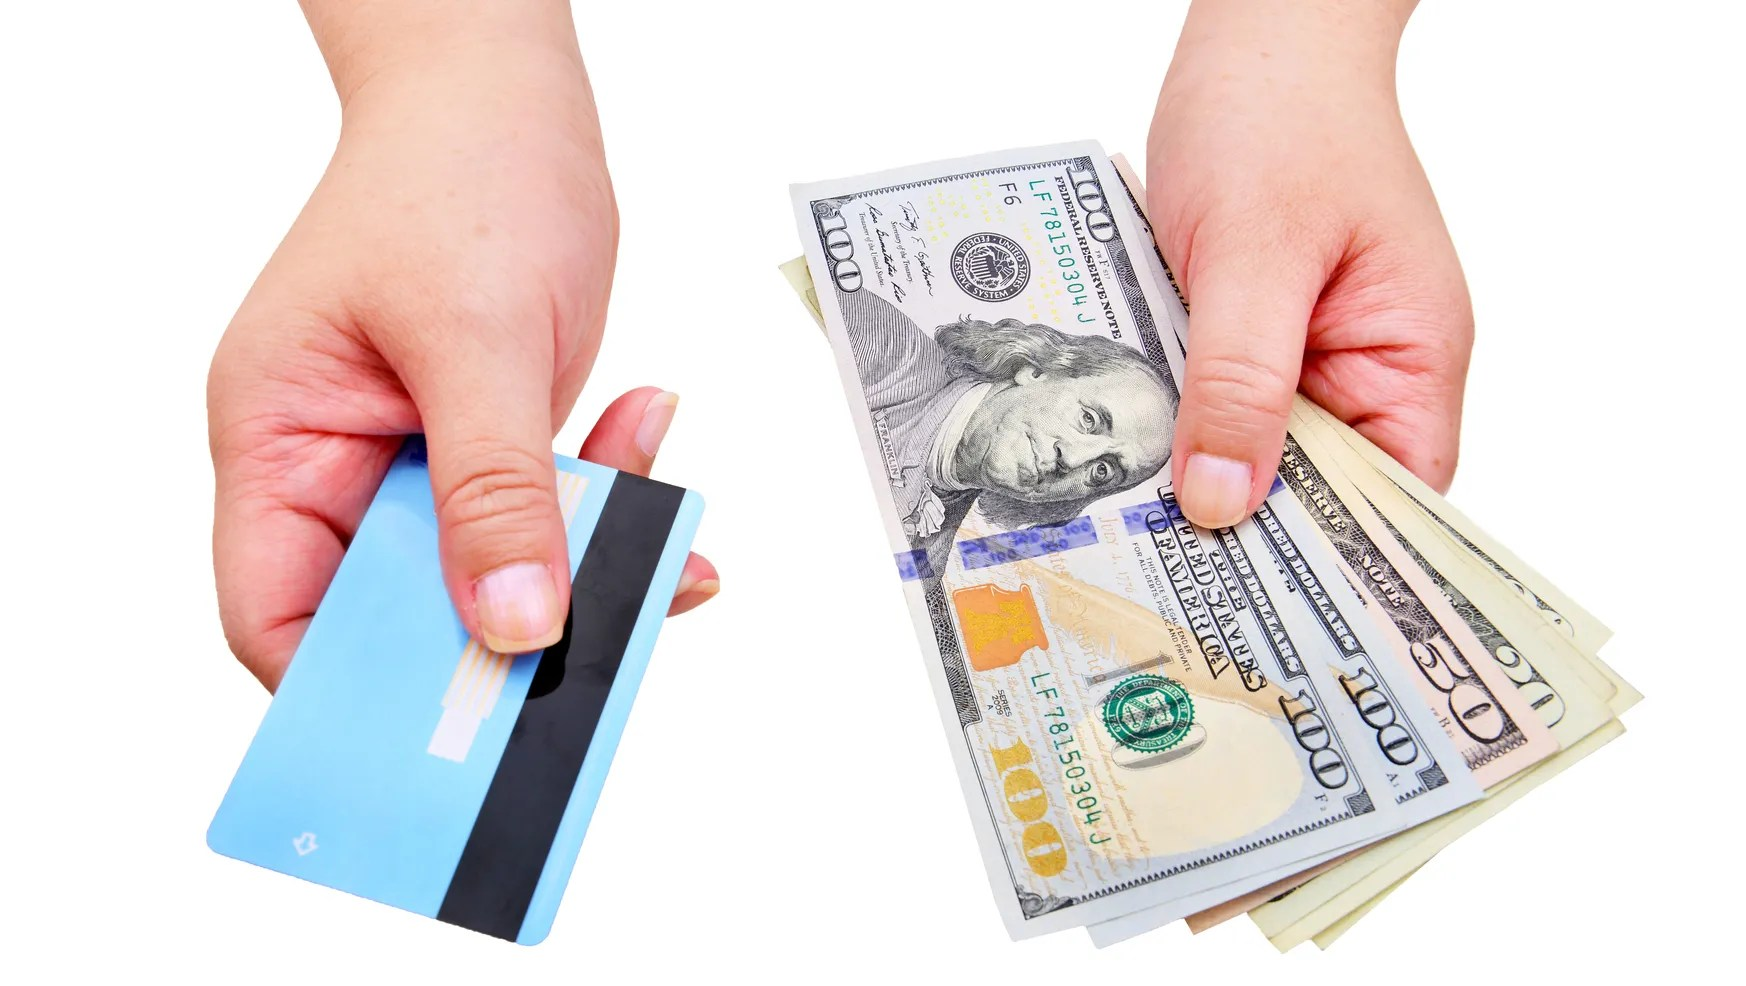 Personal loan or repayment plan? How best to lower credit card debt